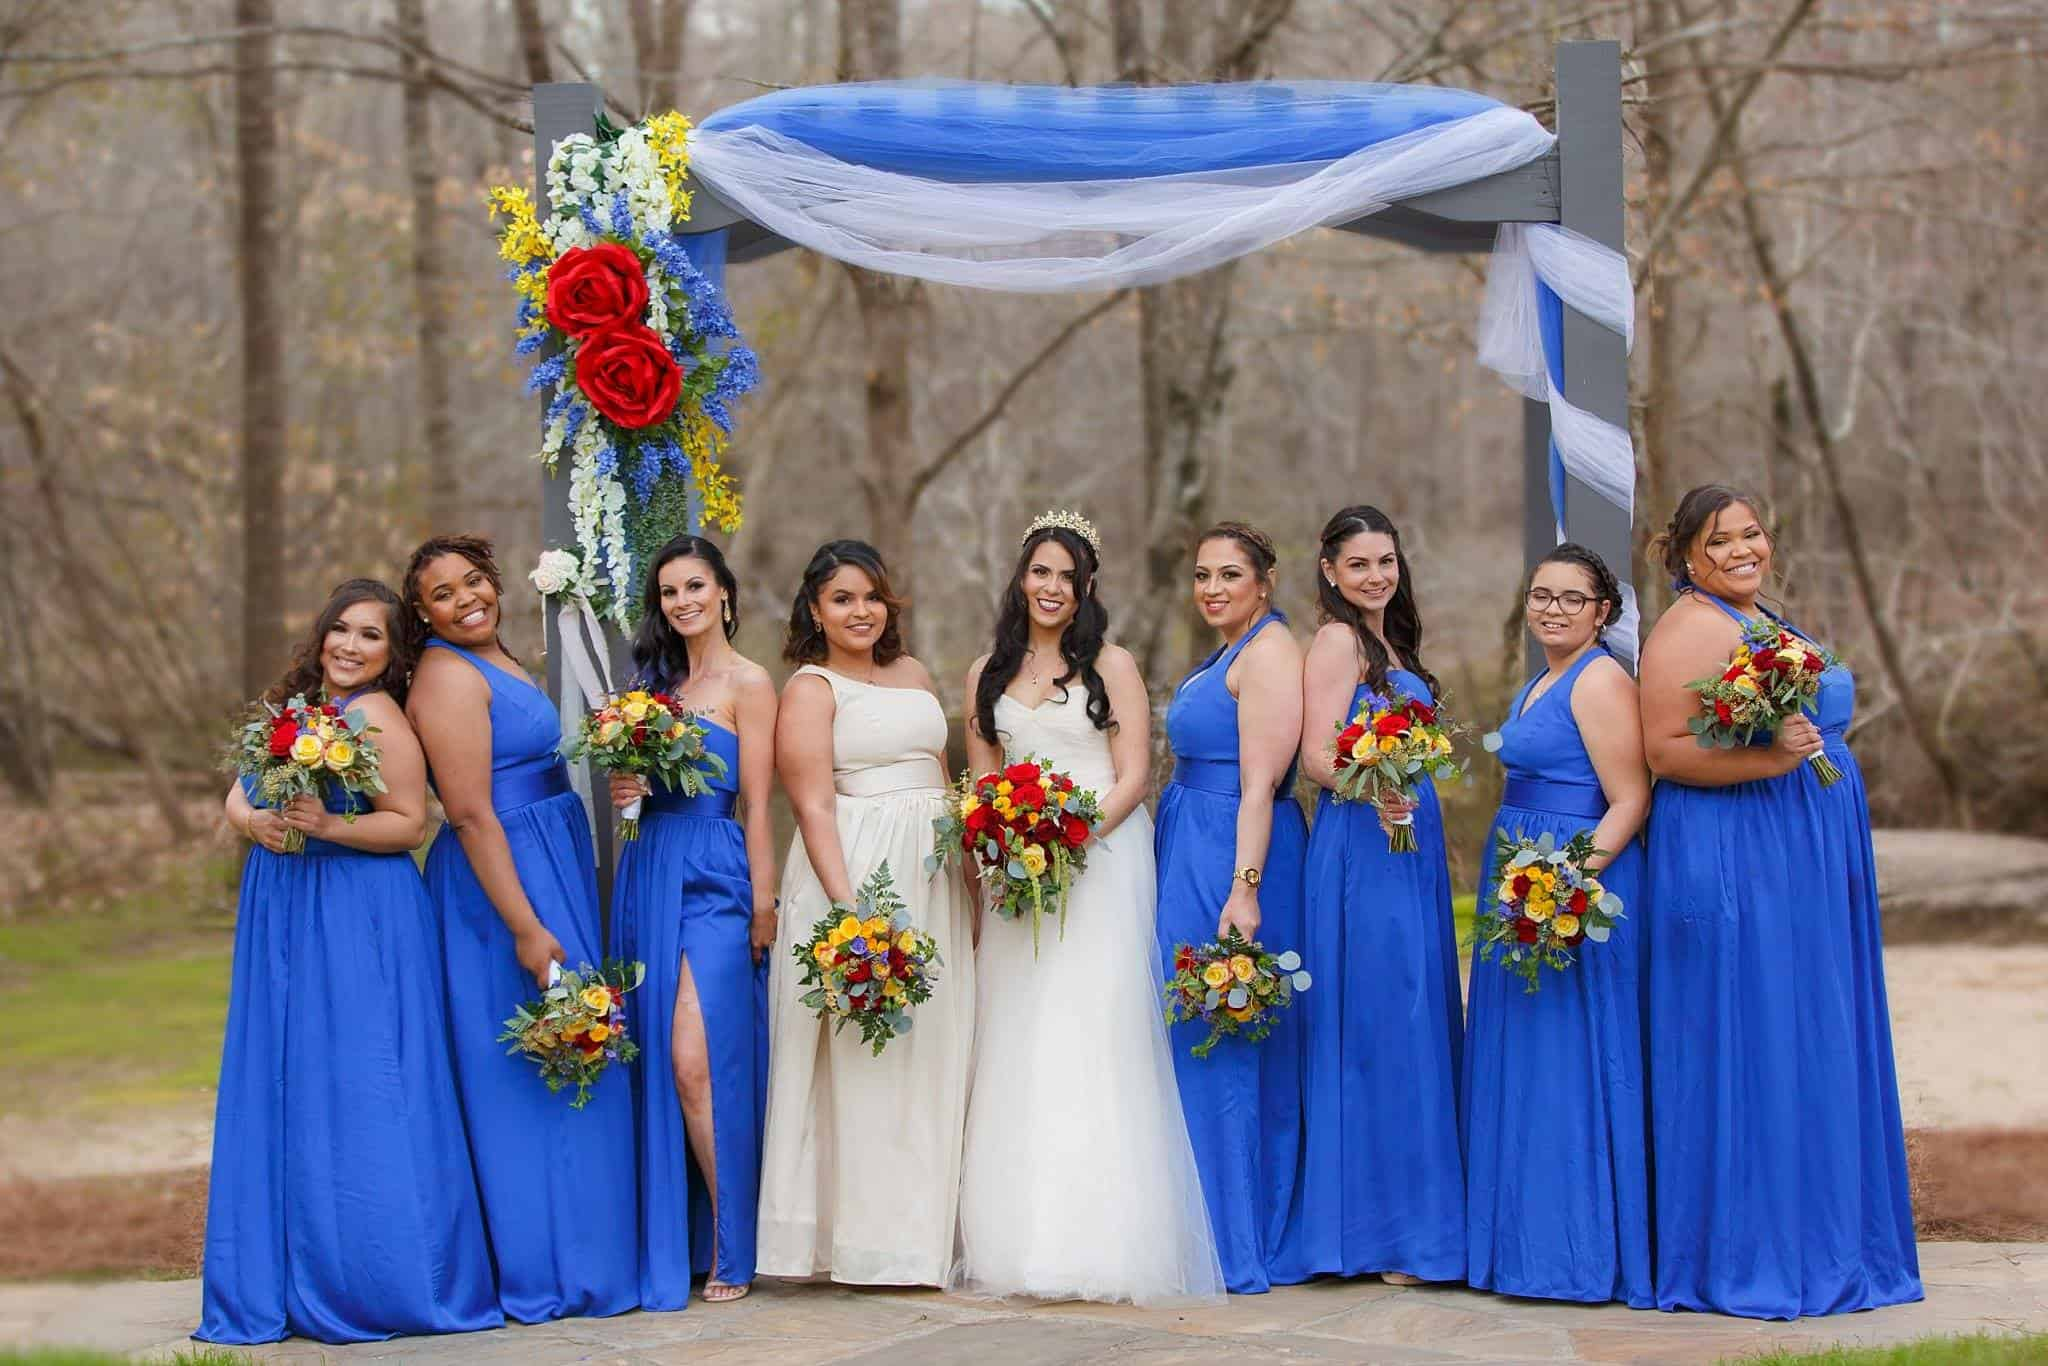 Bride with Bridesmaids in long blue dresses at the arbor draped in blue and white tulle with large floral display while holding yellow, red bouquets